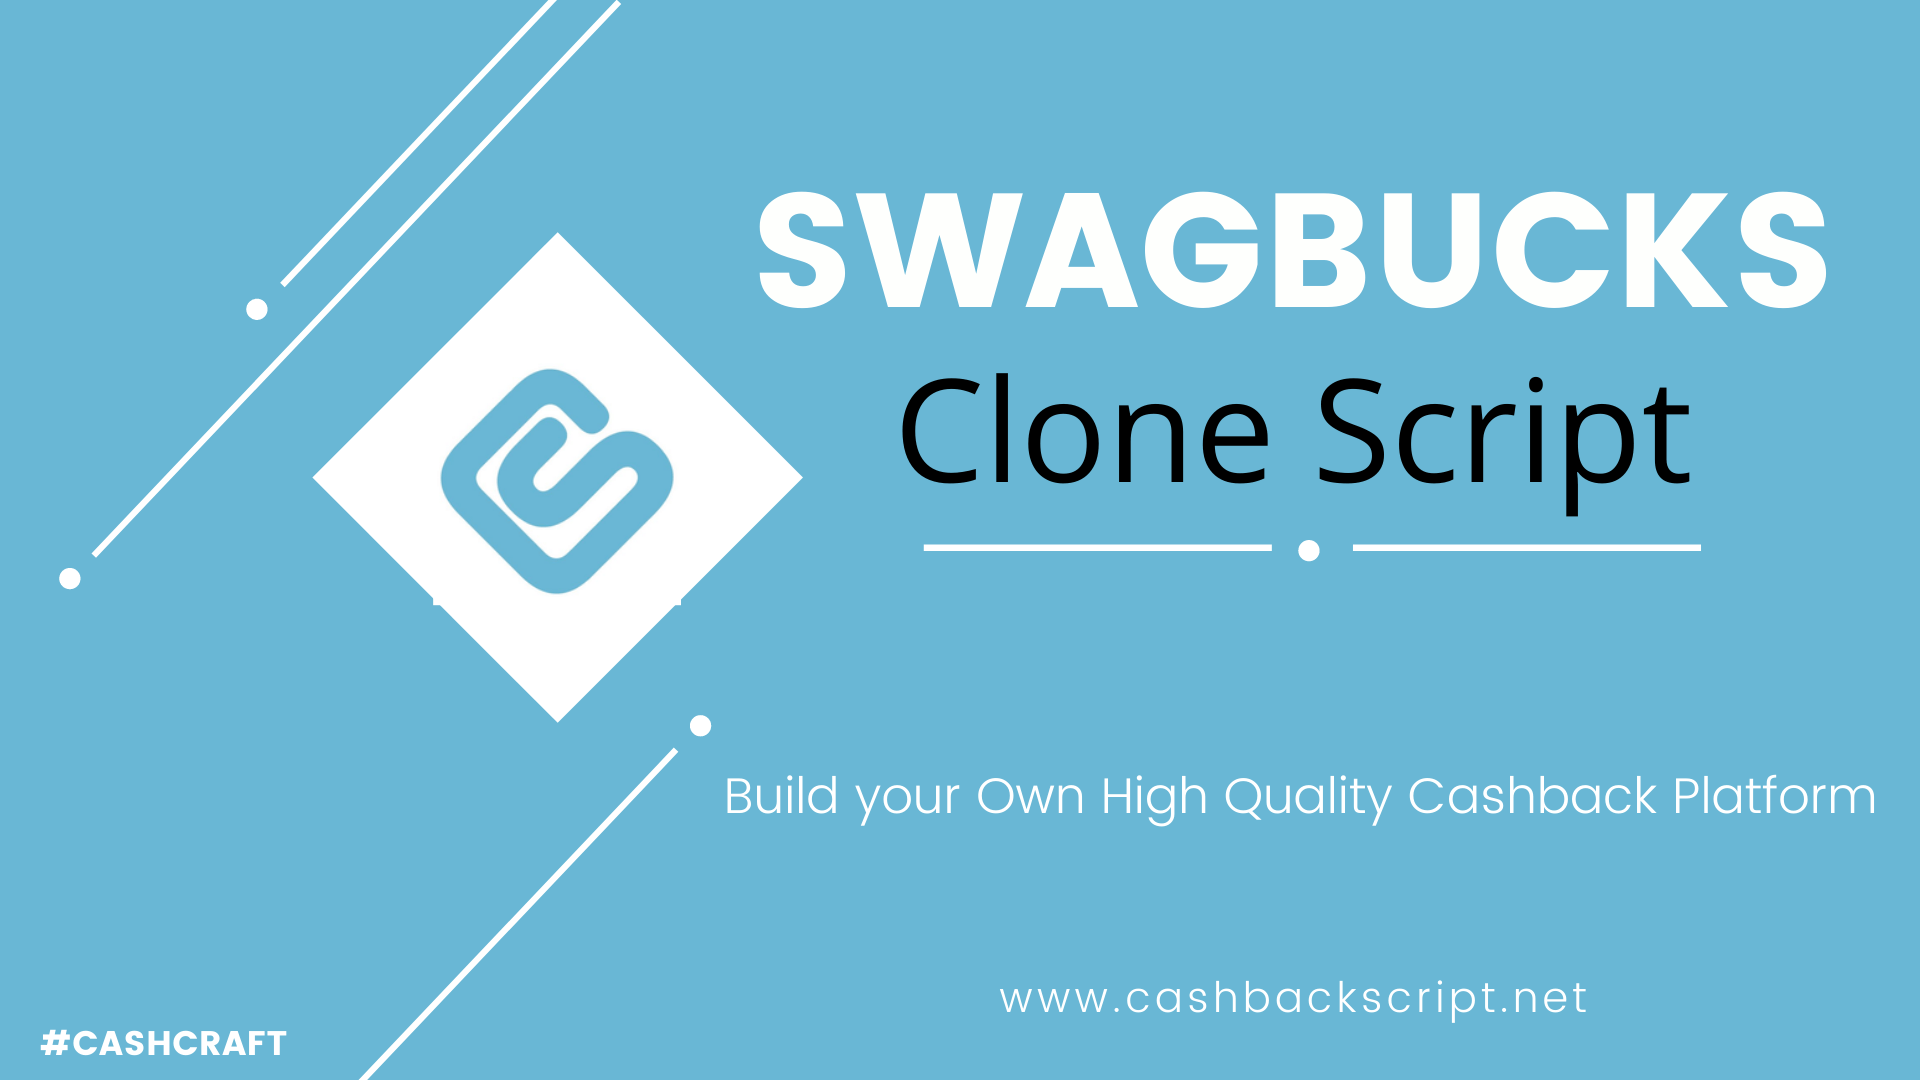 Swagbucks Clone Script to Kickstart Your own Cashback Platform like Swagbucks